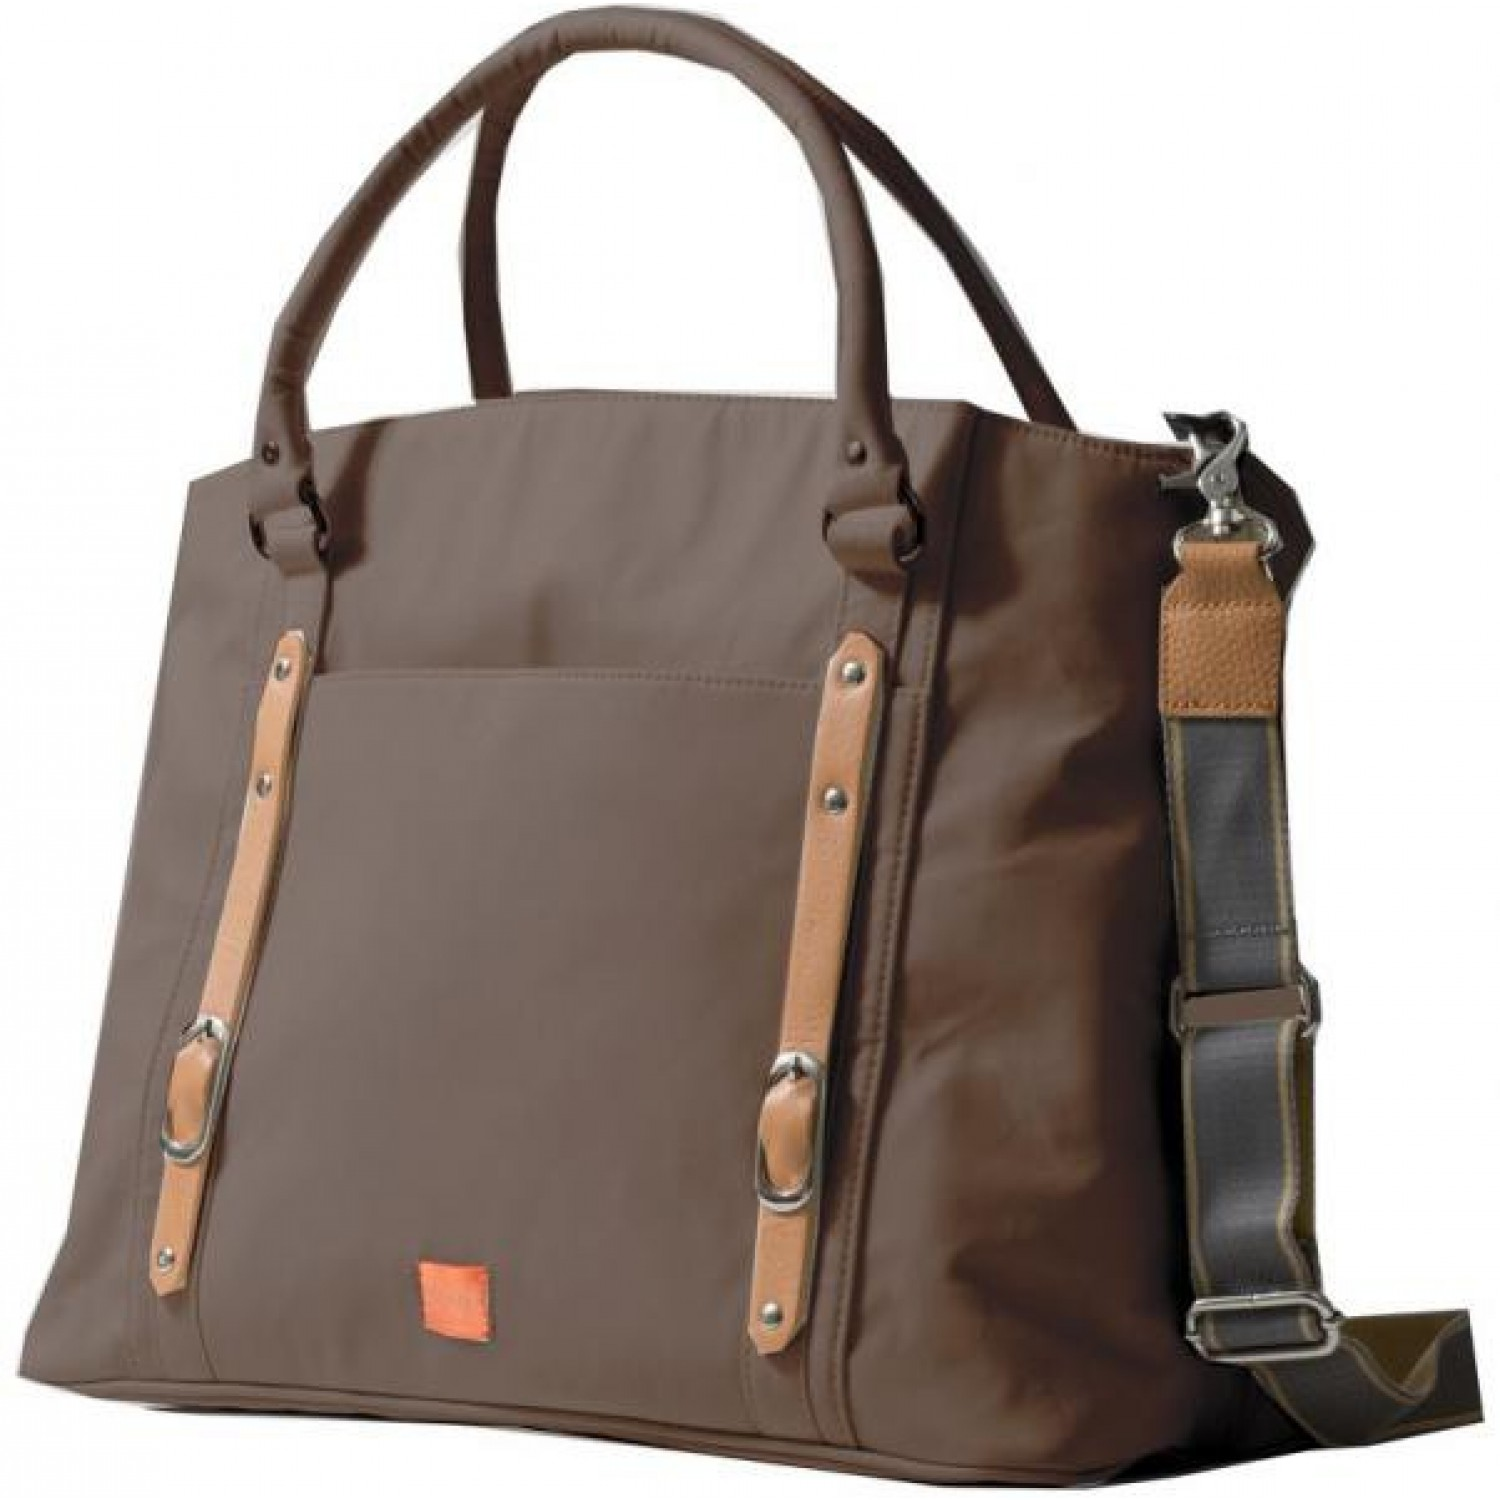 PacaPod Mirano Mocha – Changing Bag